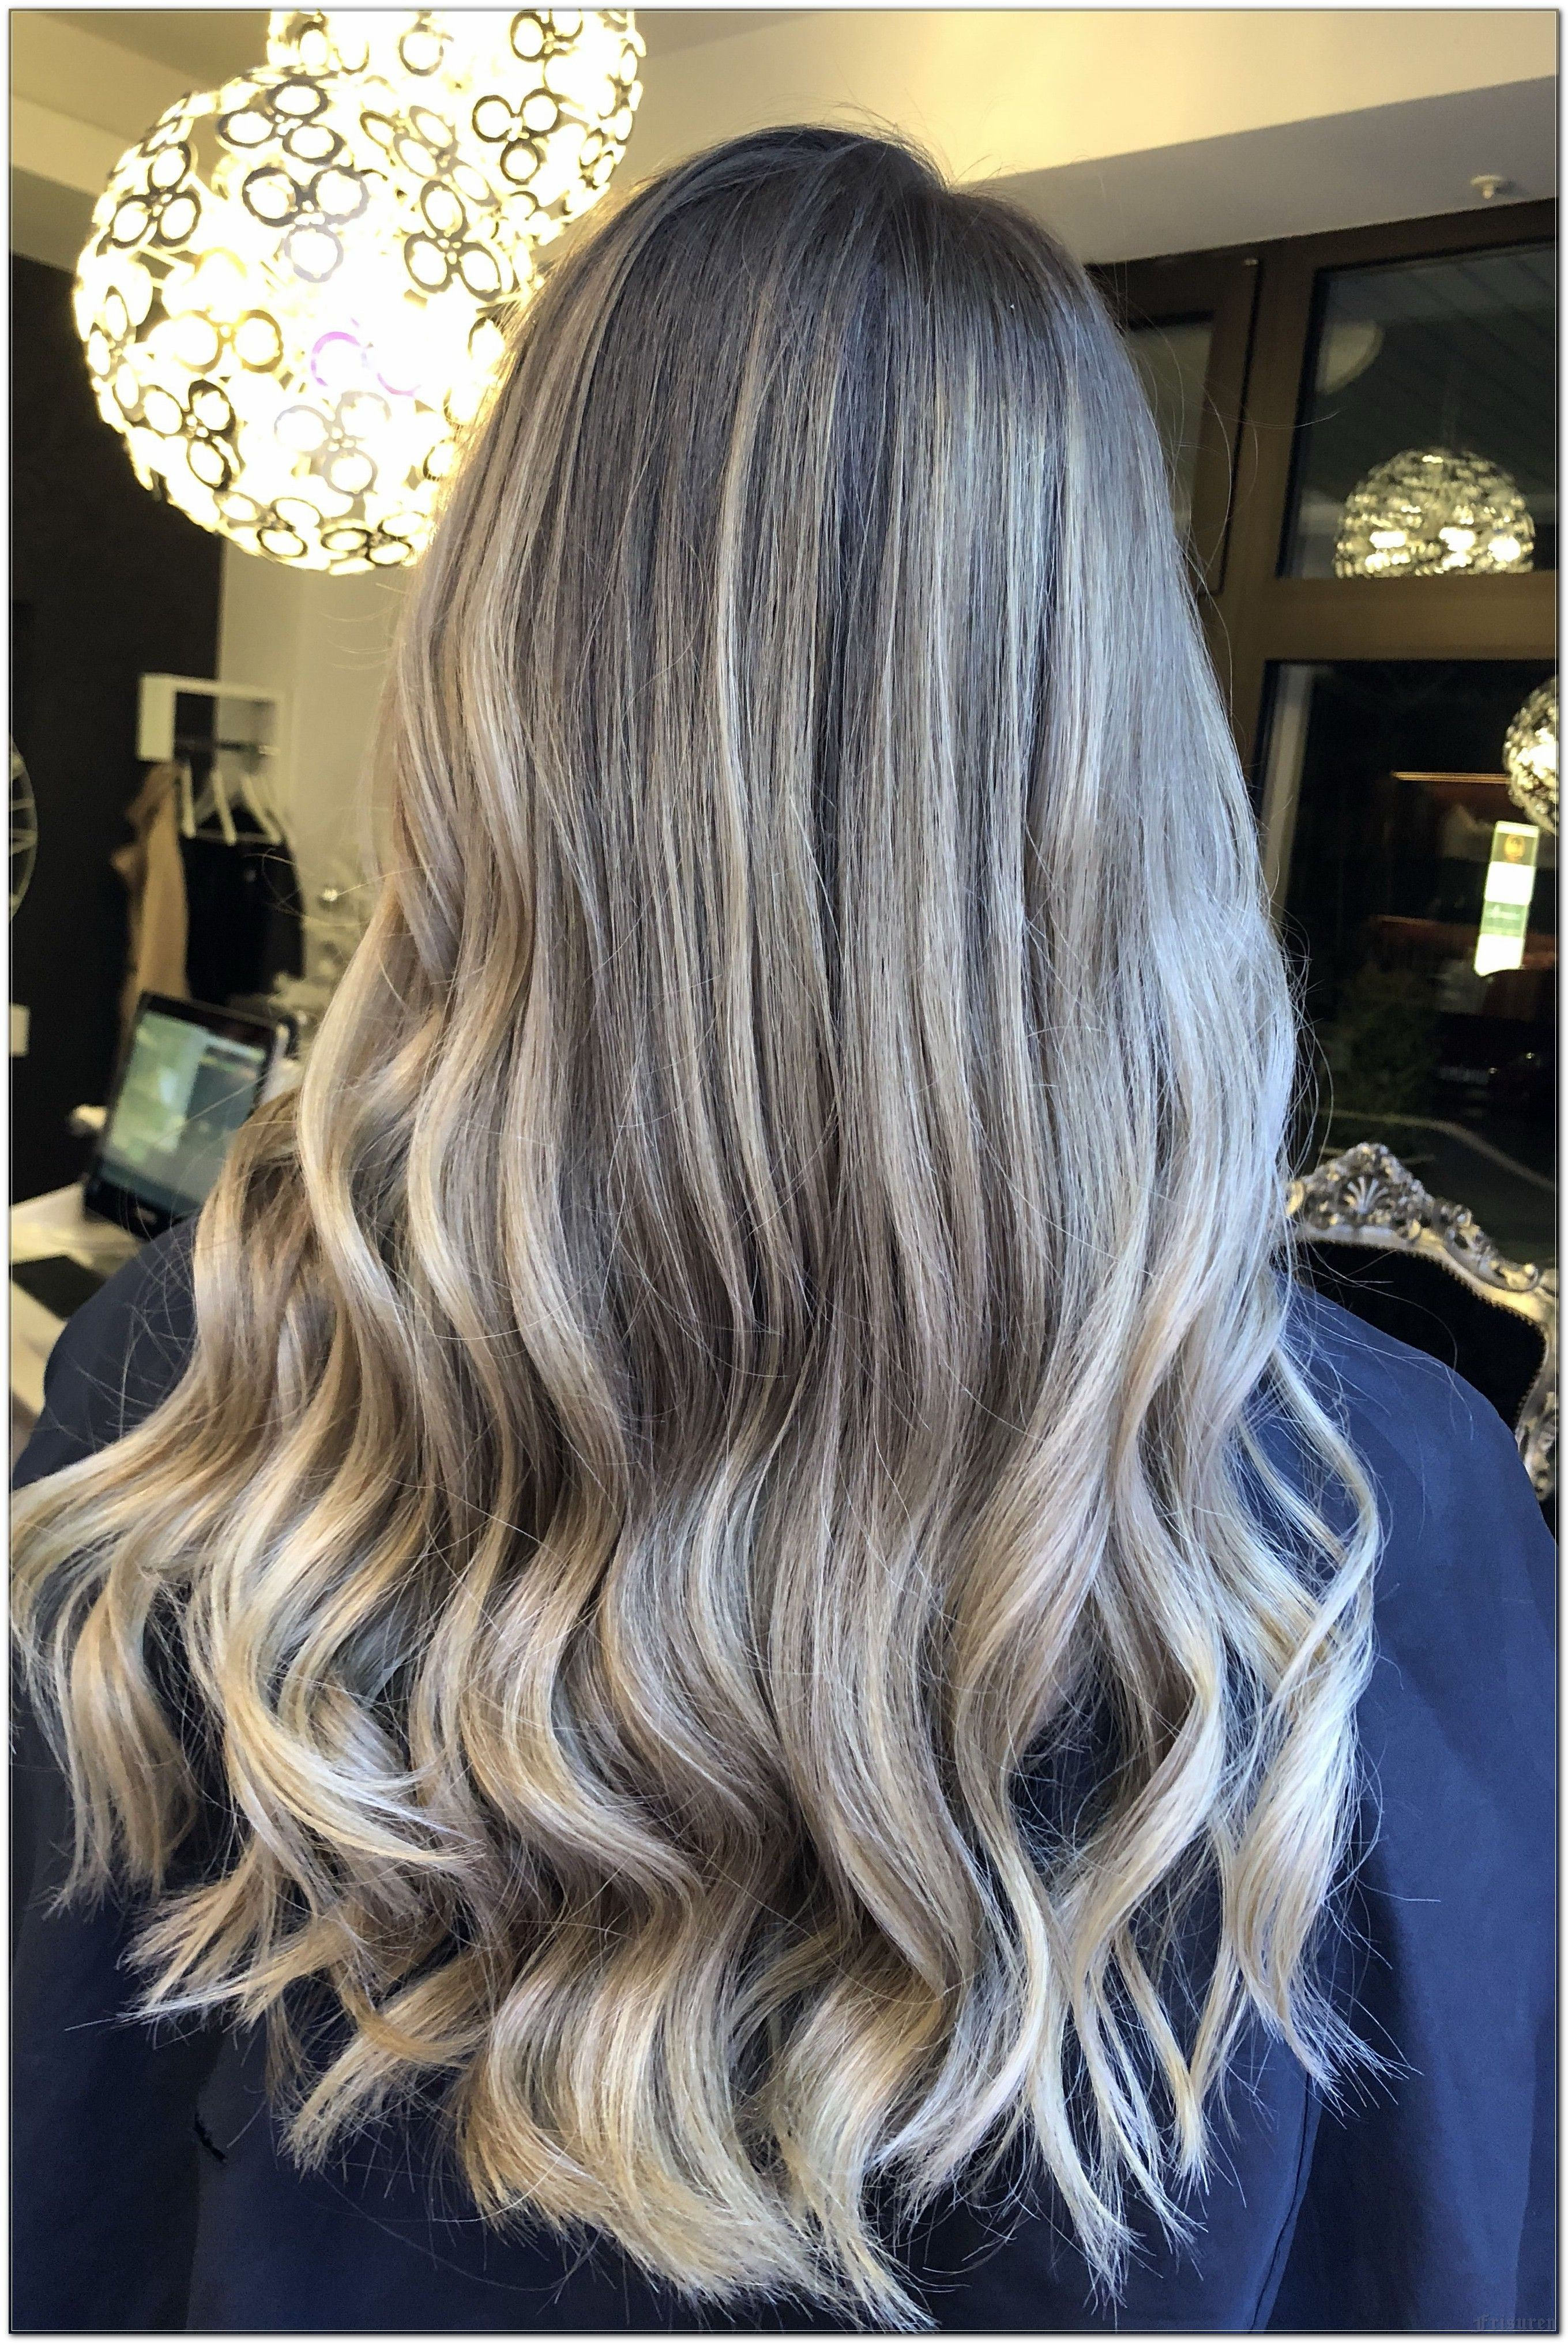 Where Can You Find Free Frisuren Resources for 2021